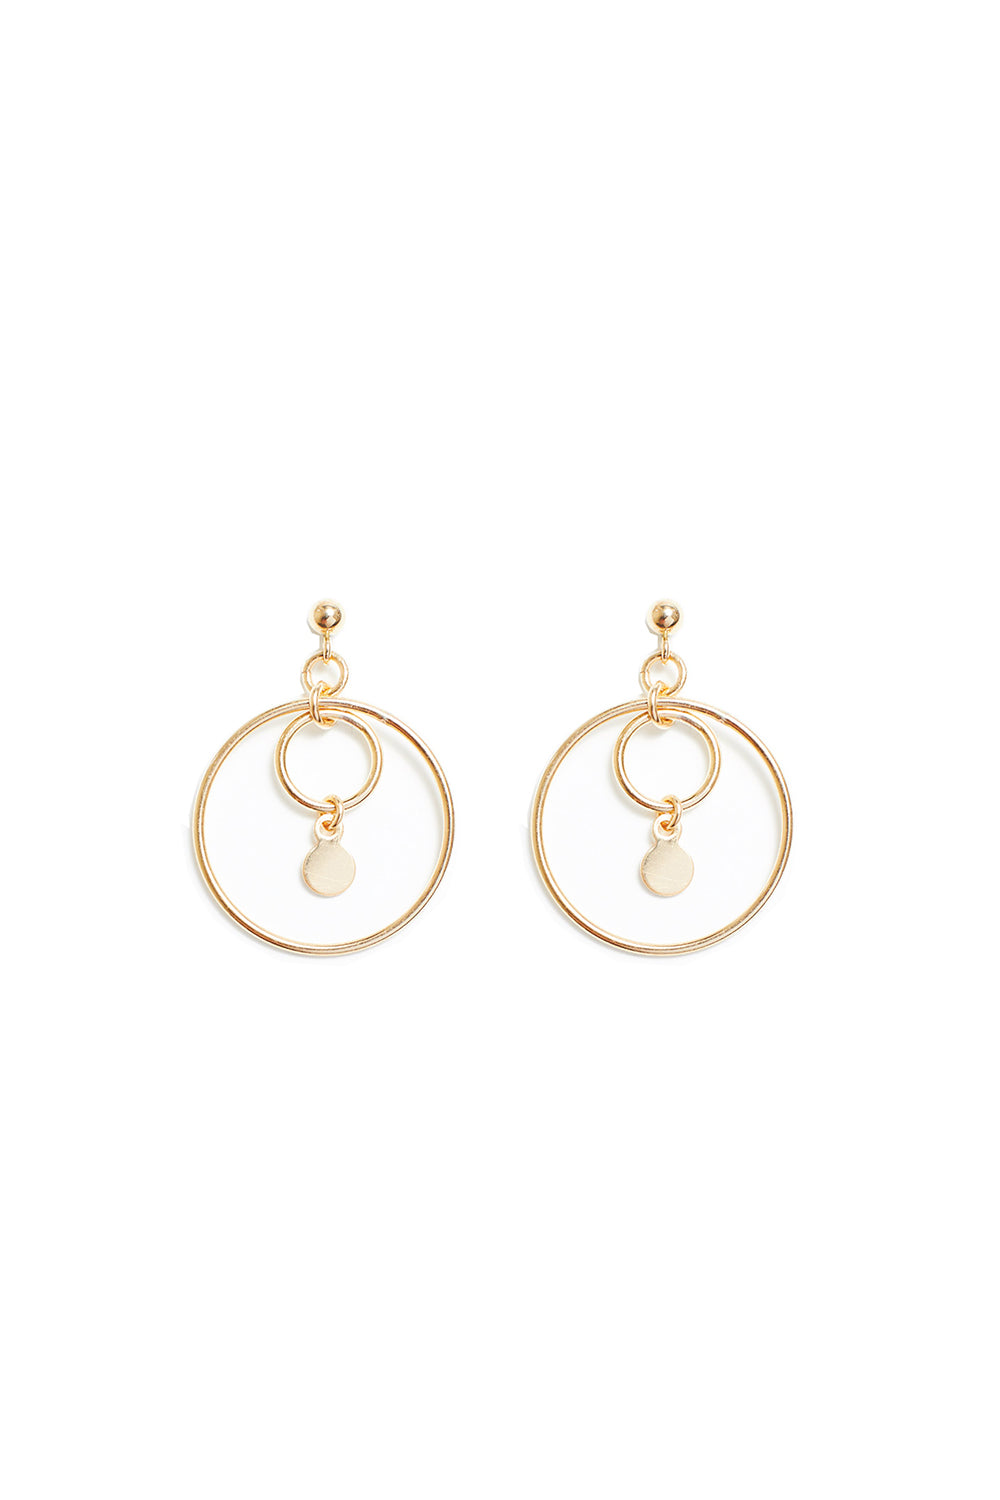 LOVE ISABELLE - Elena Earrings - Australian Fashion and Accessories Boutique - Faid Store